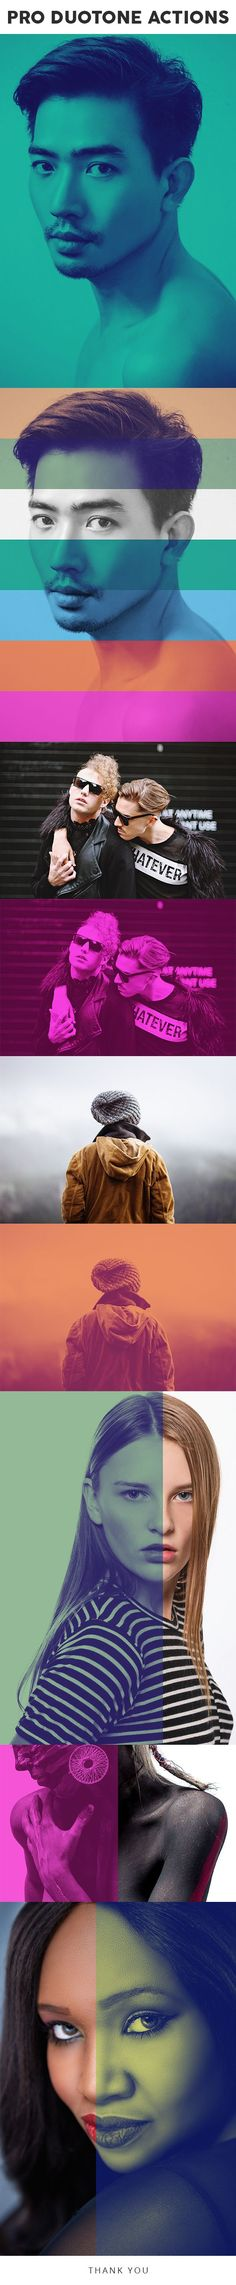 Pro DUOTONE Photoshop Actions by ENHANCEPLUS | GraphicRiver